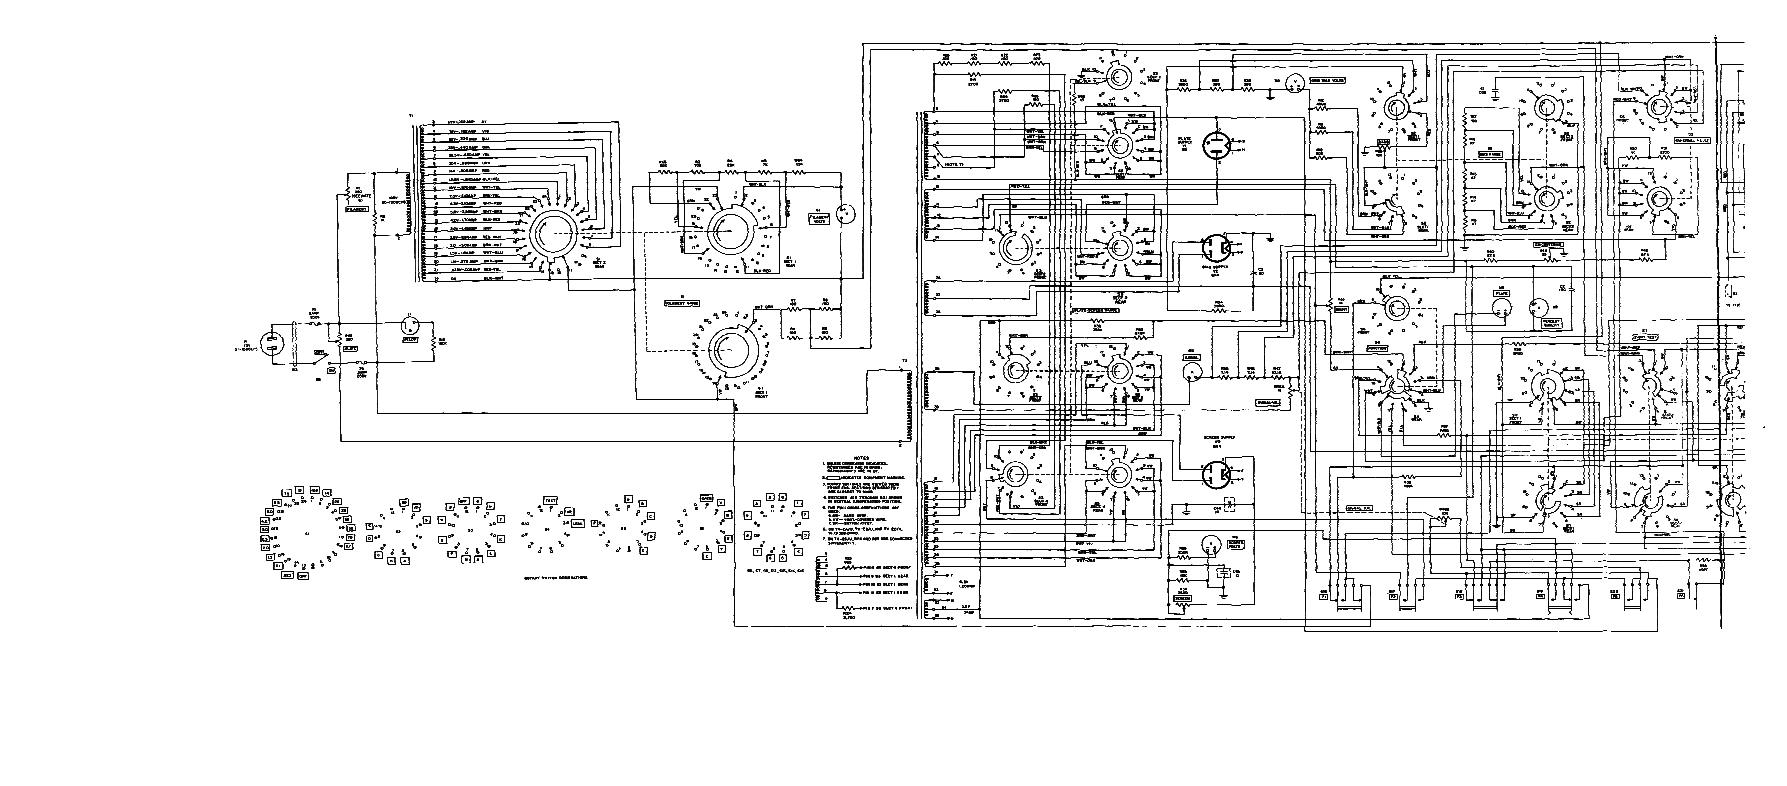 medium resolution of lg 47le5400 lcd tv schematic diagram wiring diagram paper samsung lcd tv schematic diagram